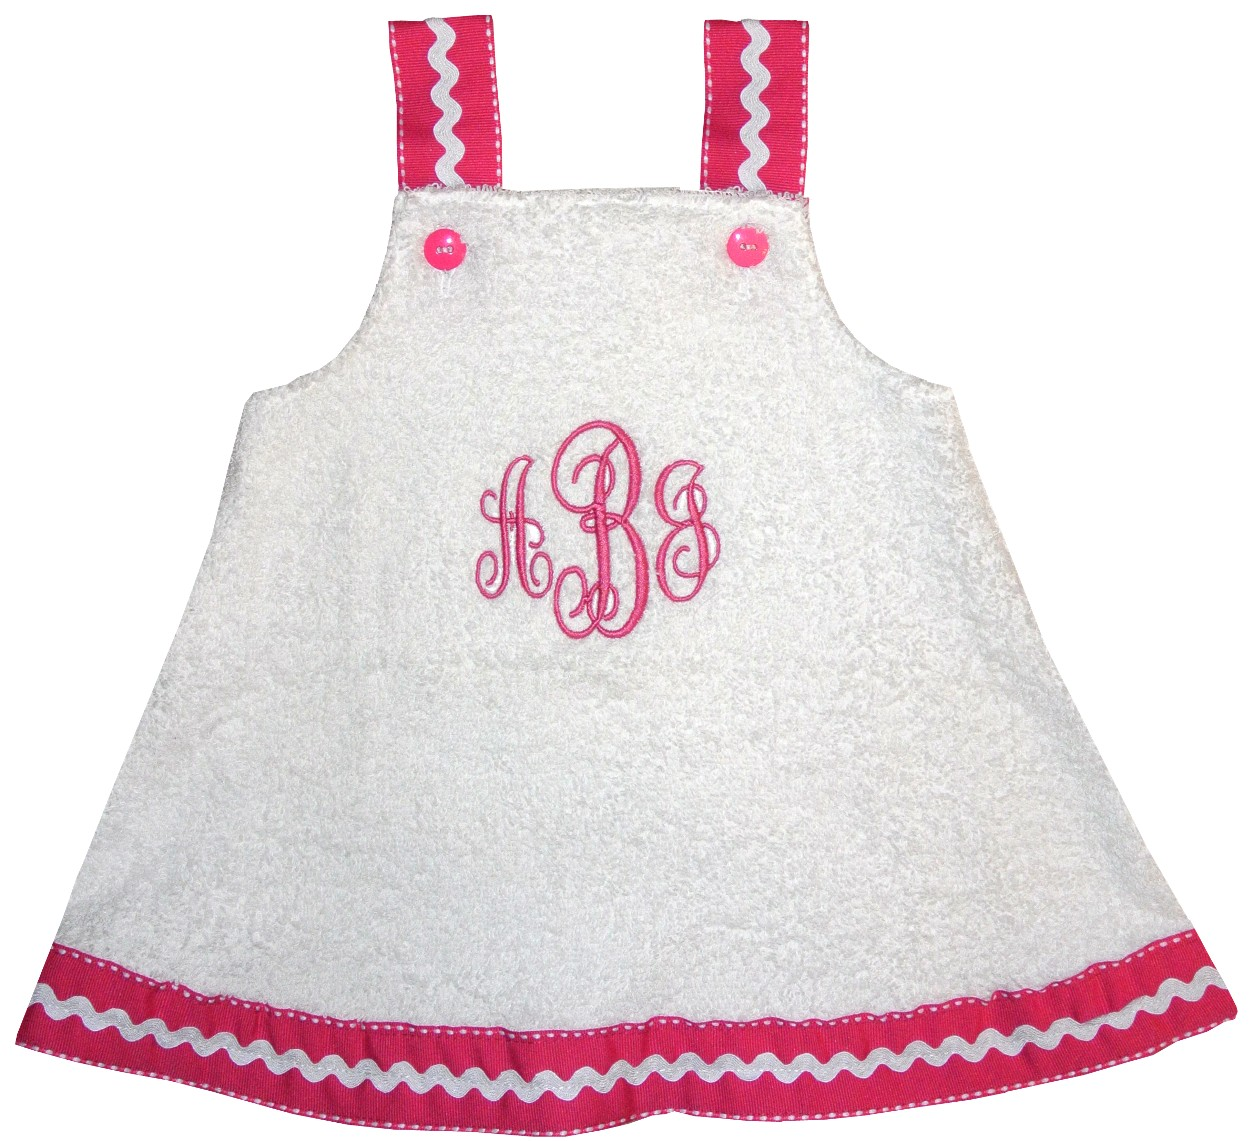 bd641770c82ed Personalized Swimsuit Cover Up for Girls